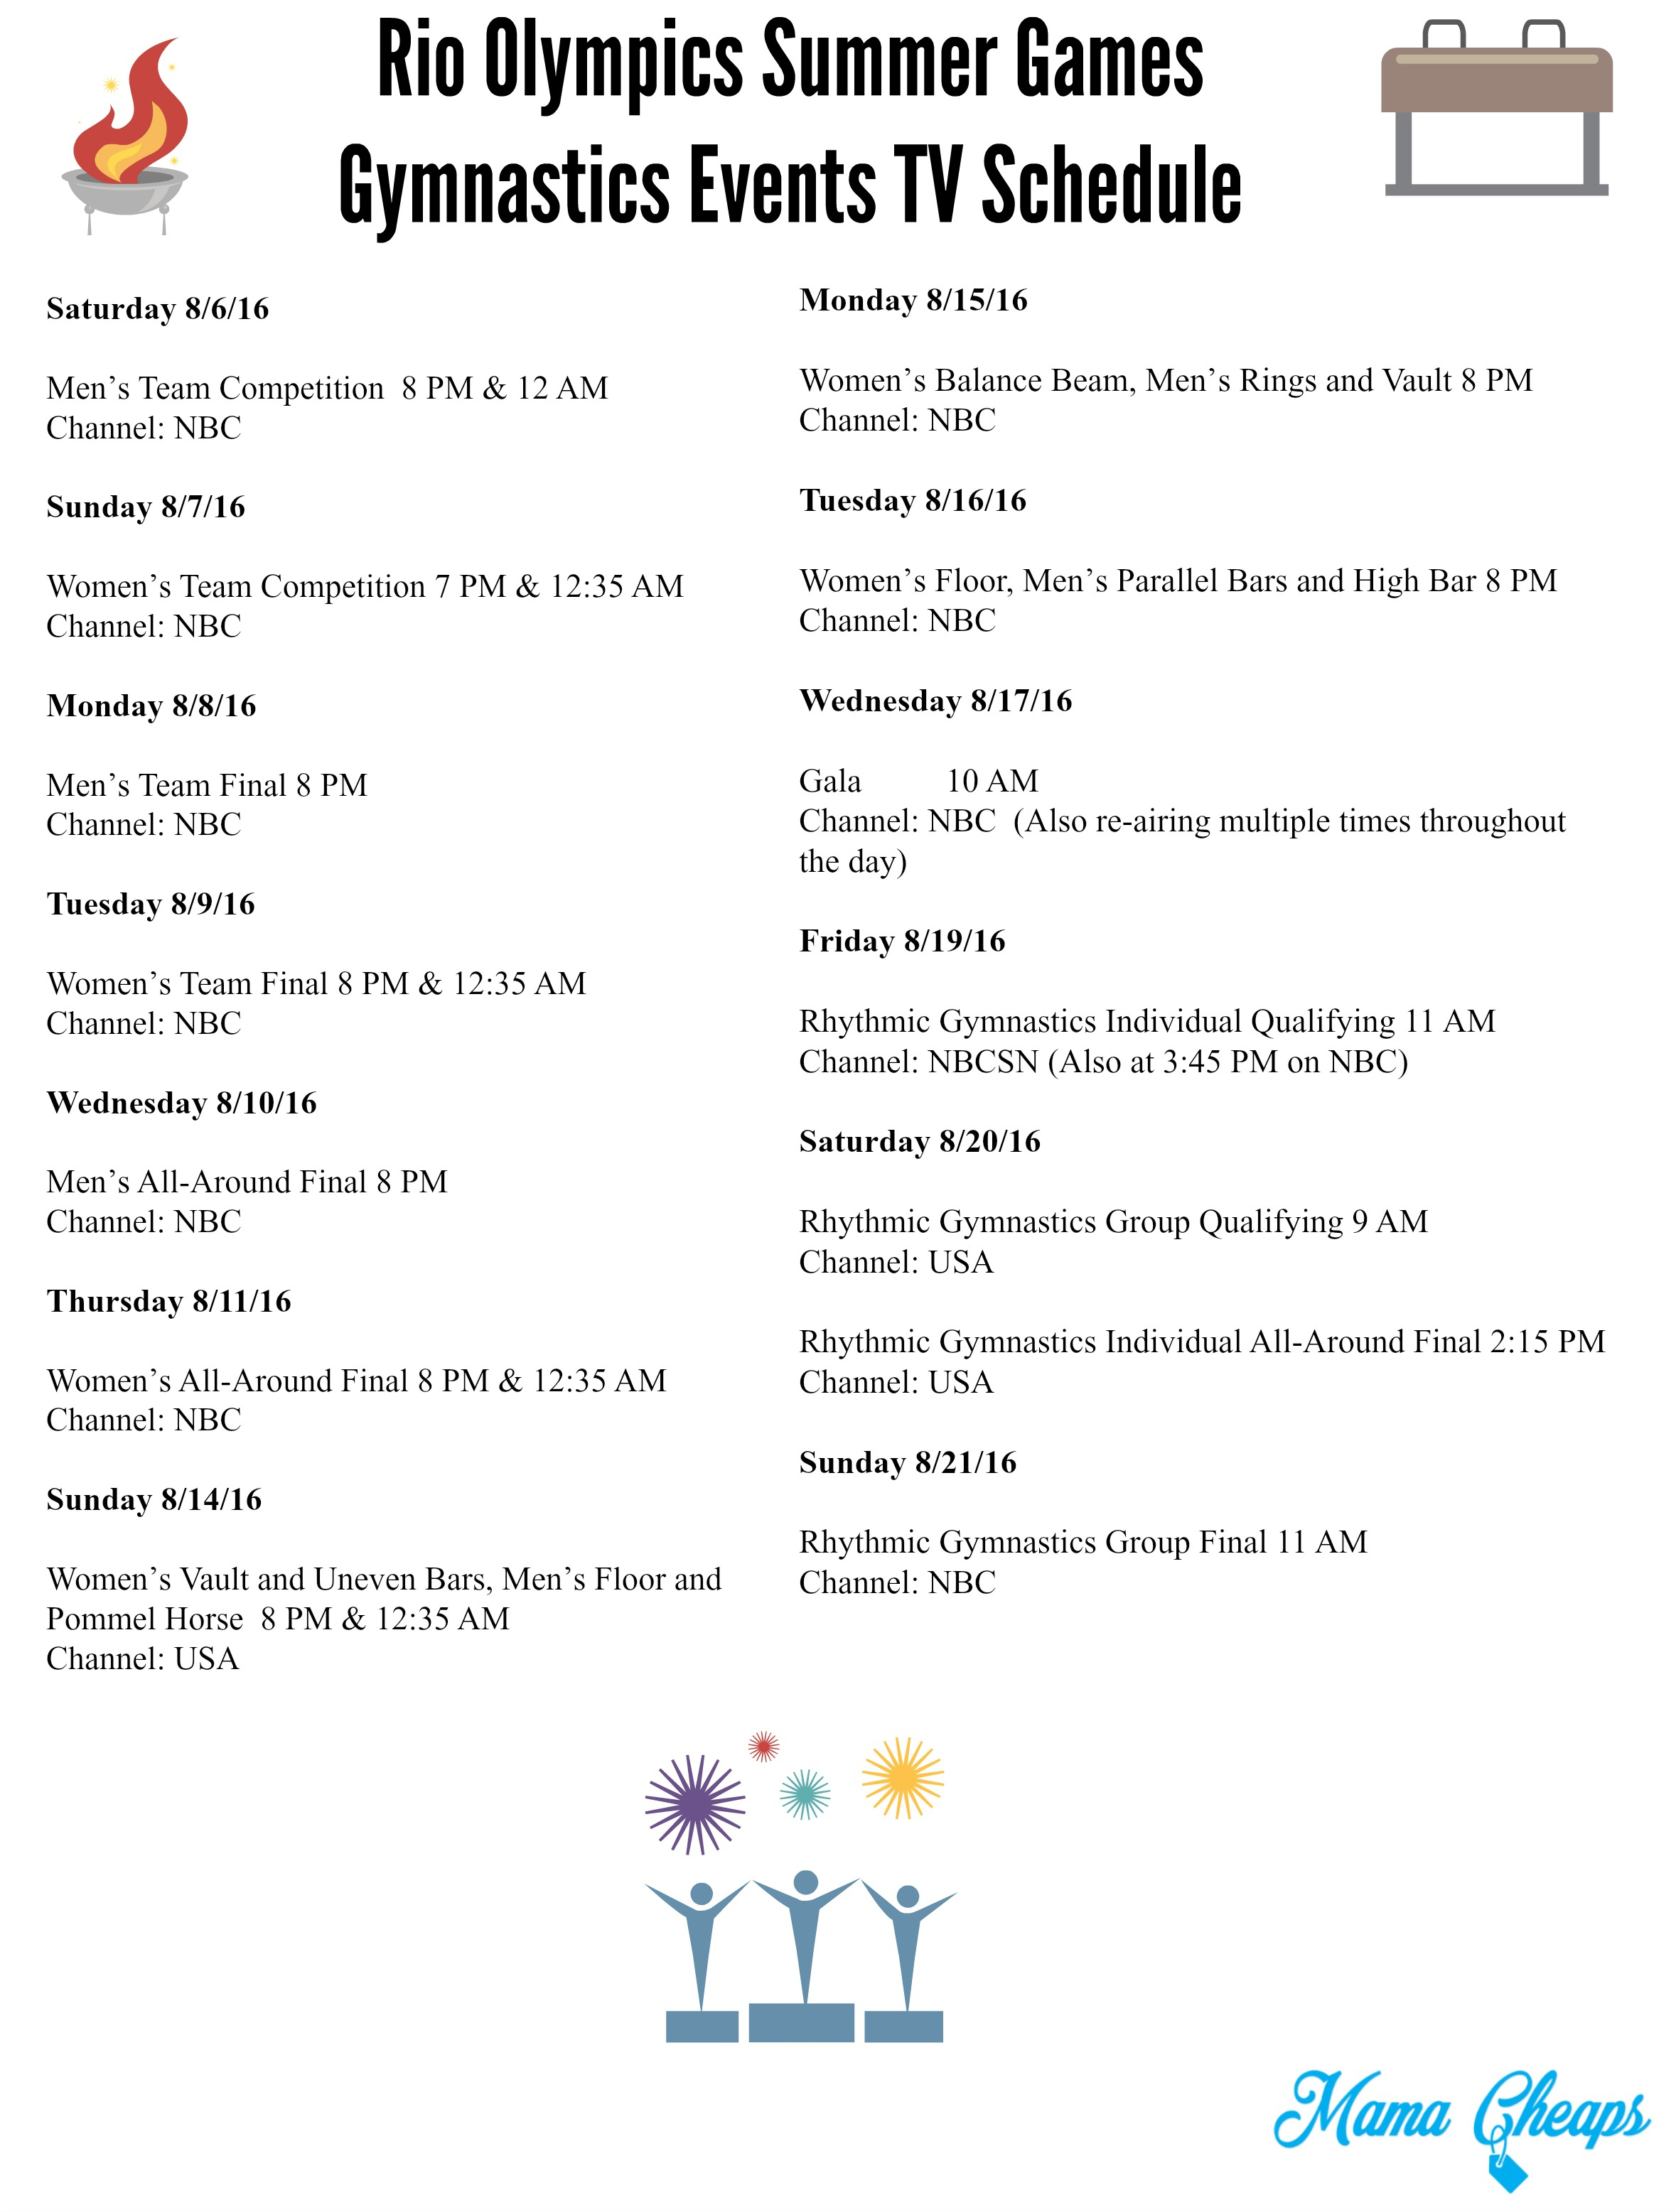 Rio Olympics Summer Games Gymnastics Events Tv Schedule - Free - Free Printable Summer Games